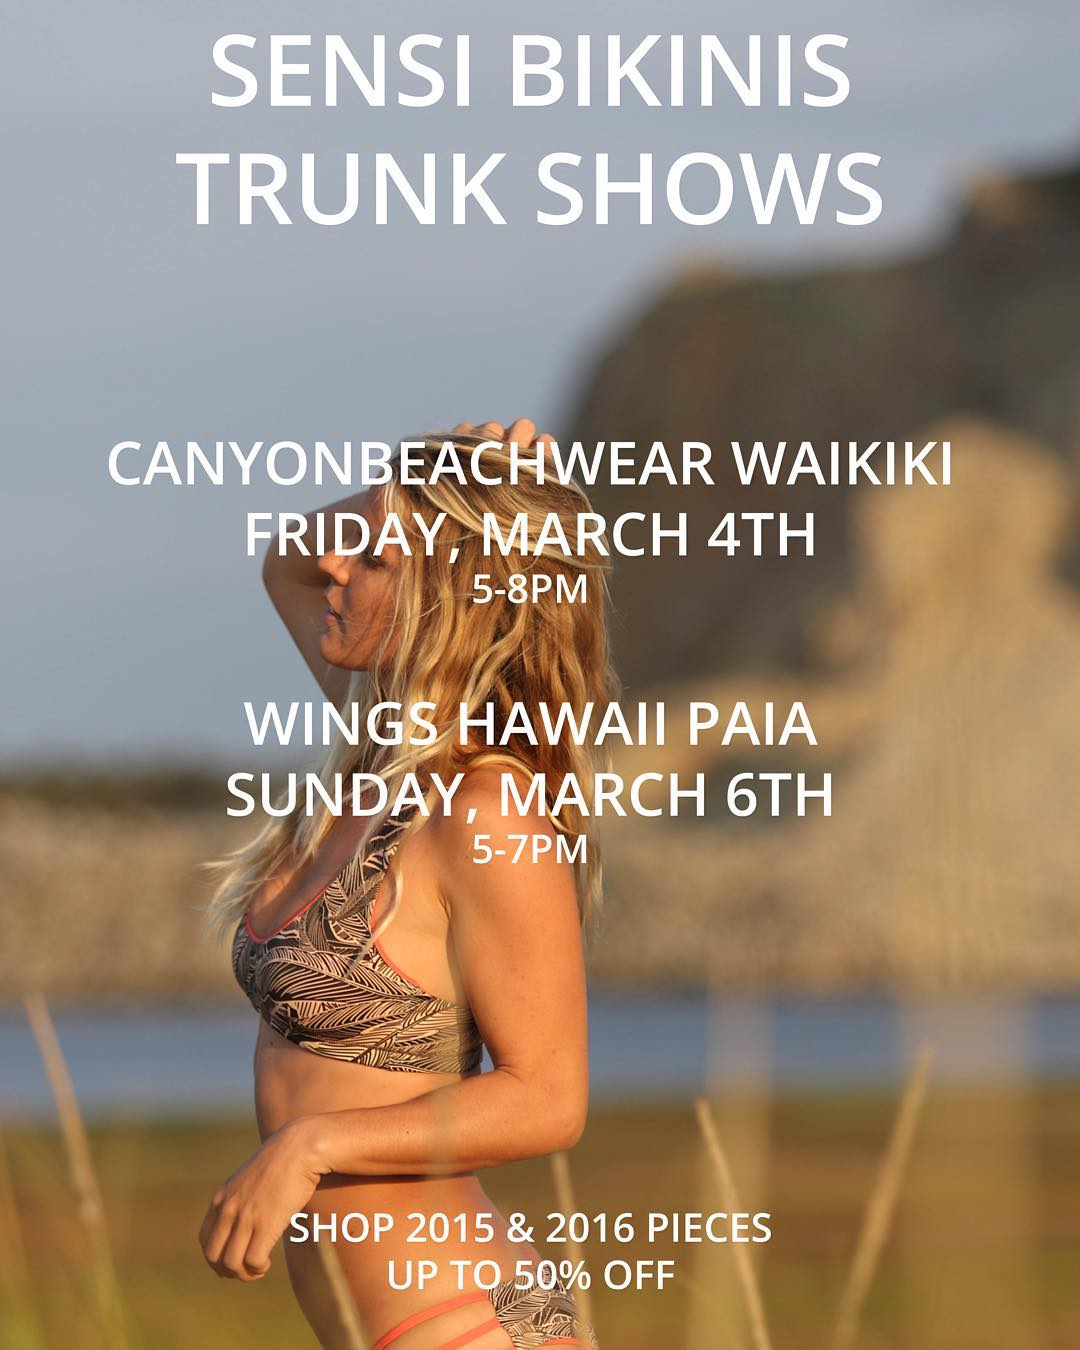 Hawaii babes! We're a-coming for ya. Come out and meet yours truly and ambassador @saltkissed this Friday in Oahu at @canyonbeachwearwaikiki and Sunday in Maui at @wingshawaii